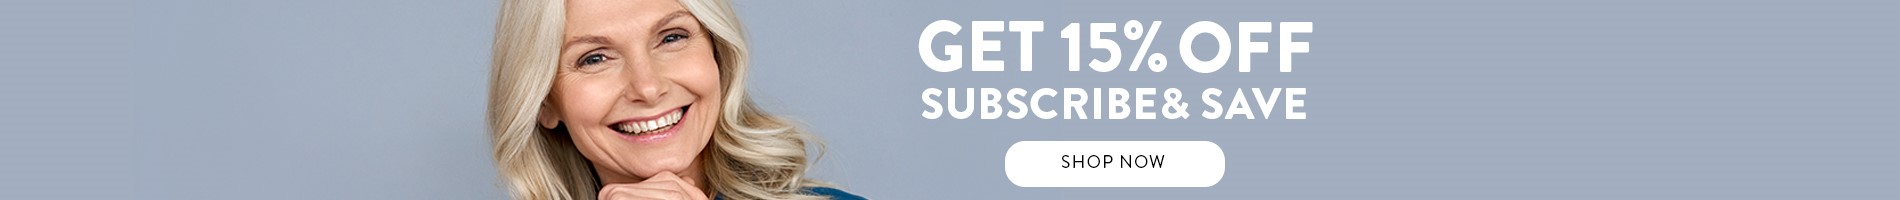 Get 15% off subscribe and save SHOP NOW